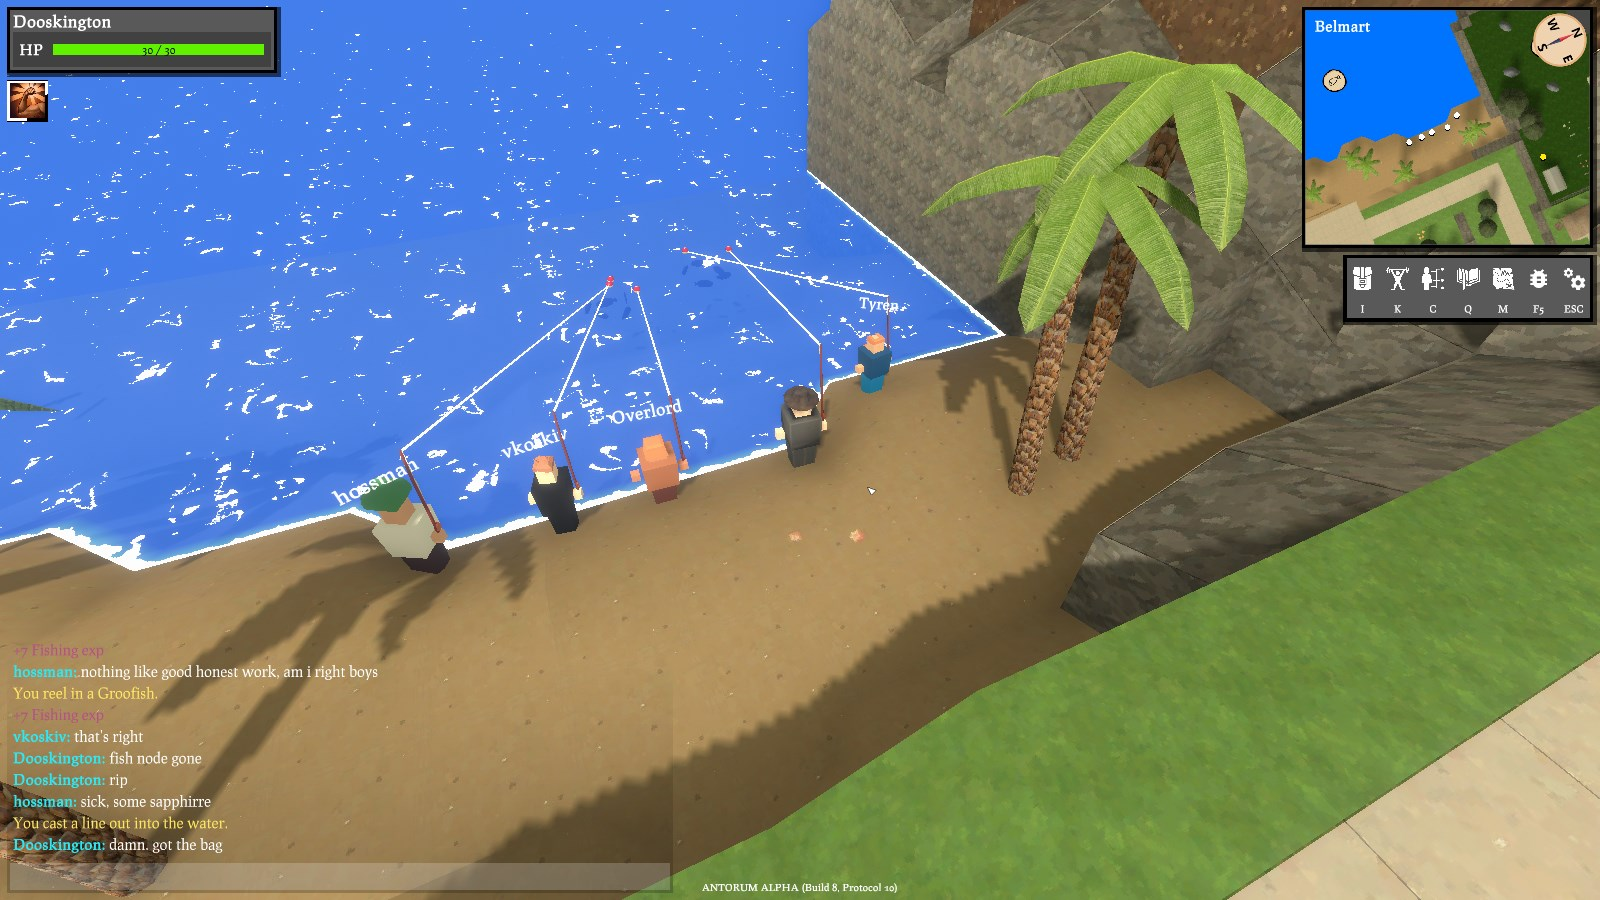 Some players fishing at the beach